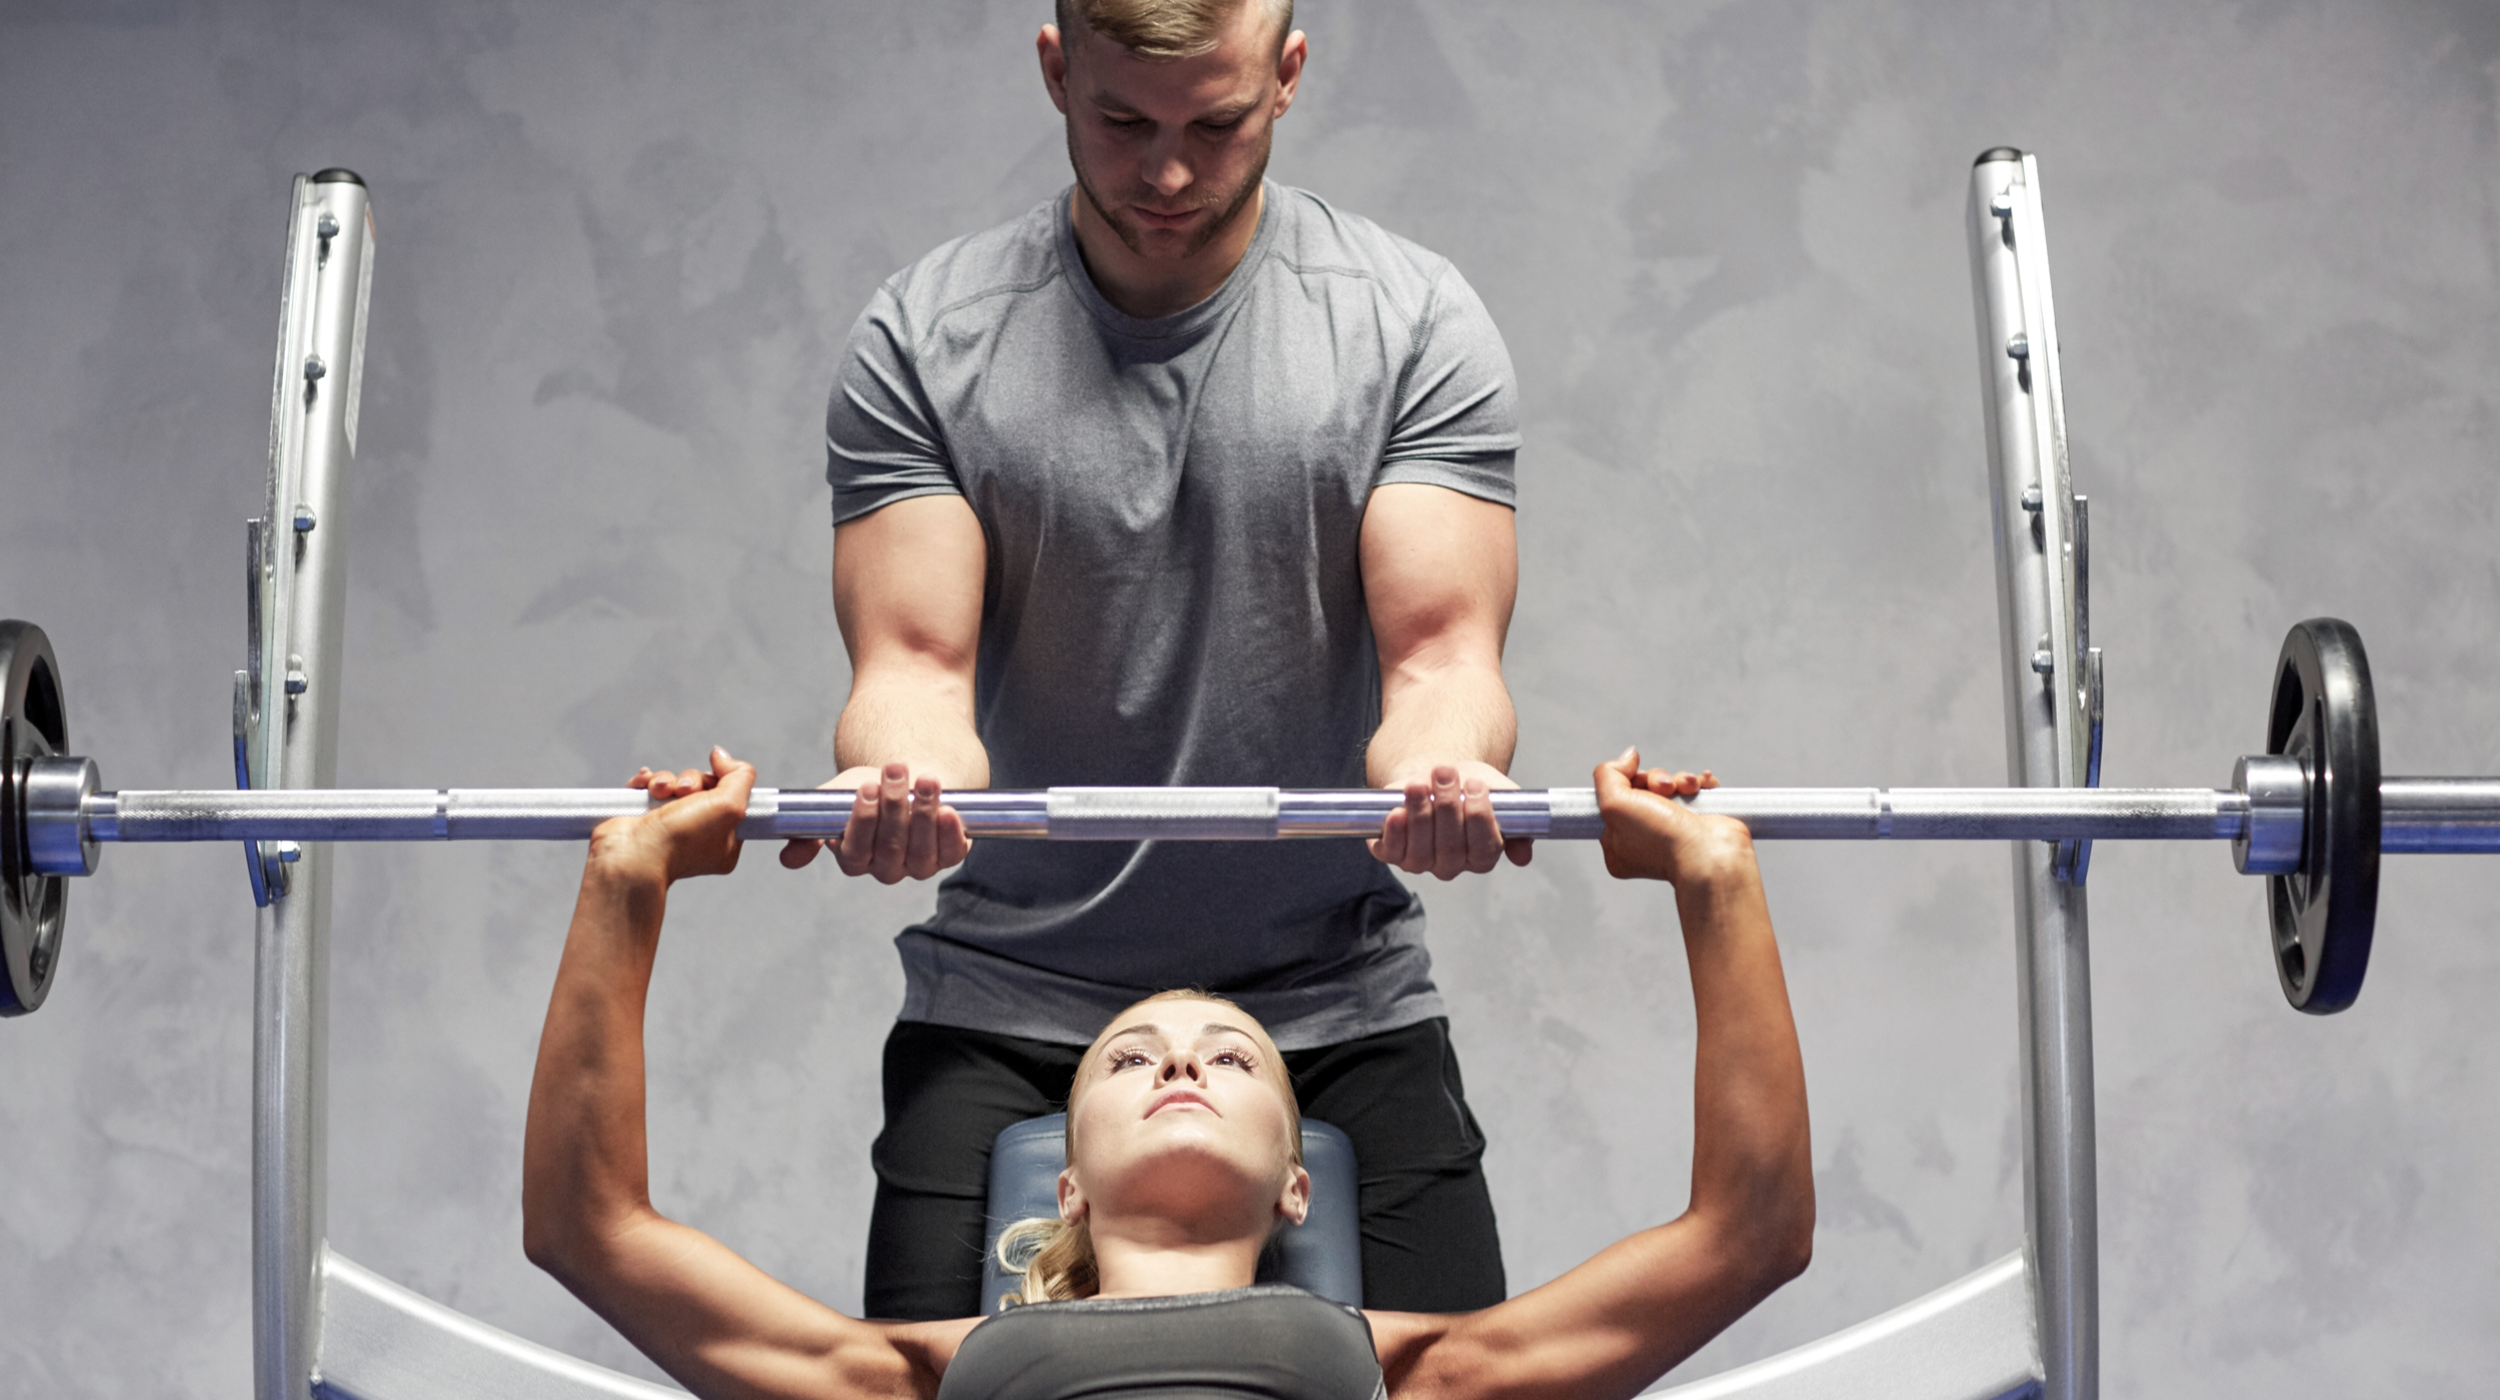 How do I Know if my Personal Trainer Knows What he is Doing?